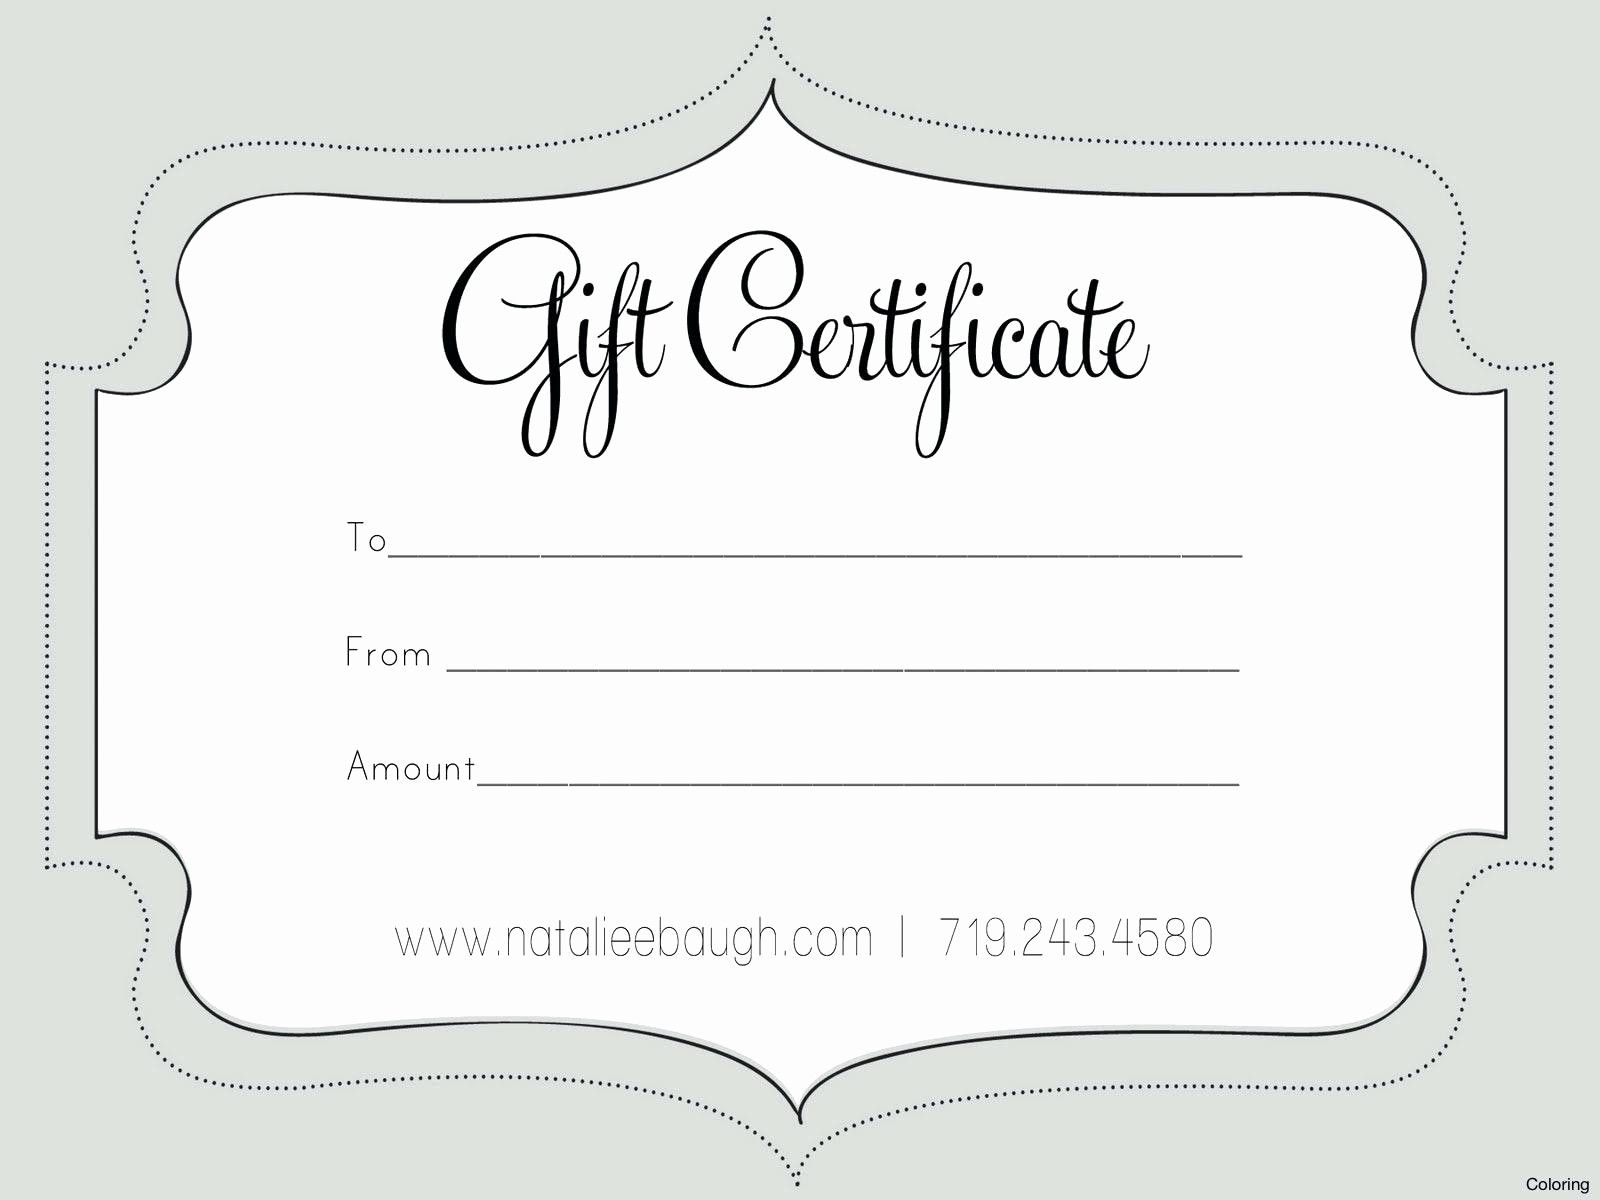 The Stunning 022 Gift Registry Card Template Free New Nail Certificate Inten Free Gift Certificate Template Gift Card Template Free Printable Gift Certificates